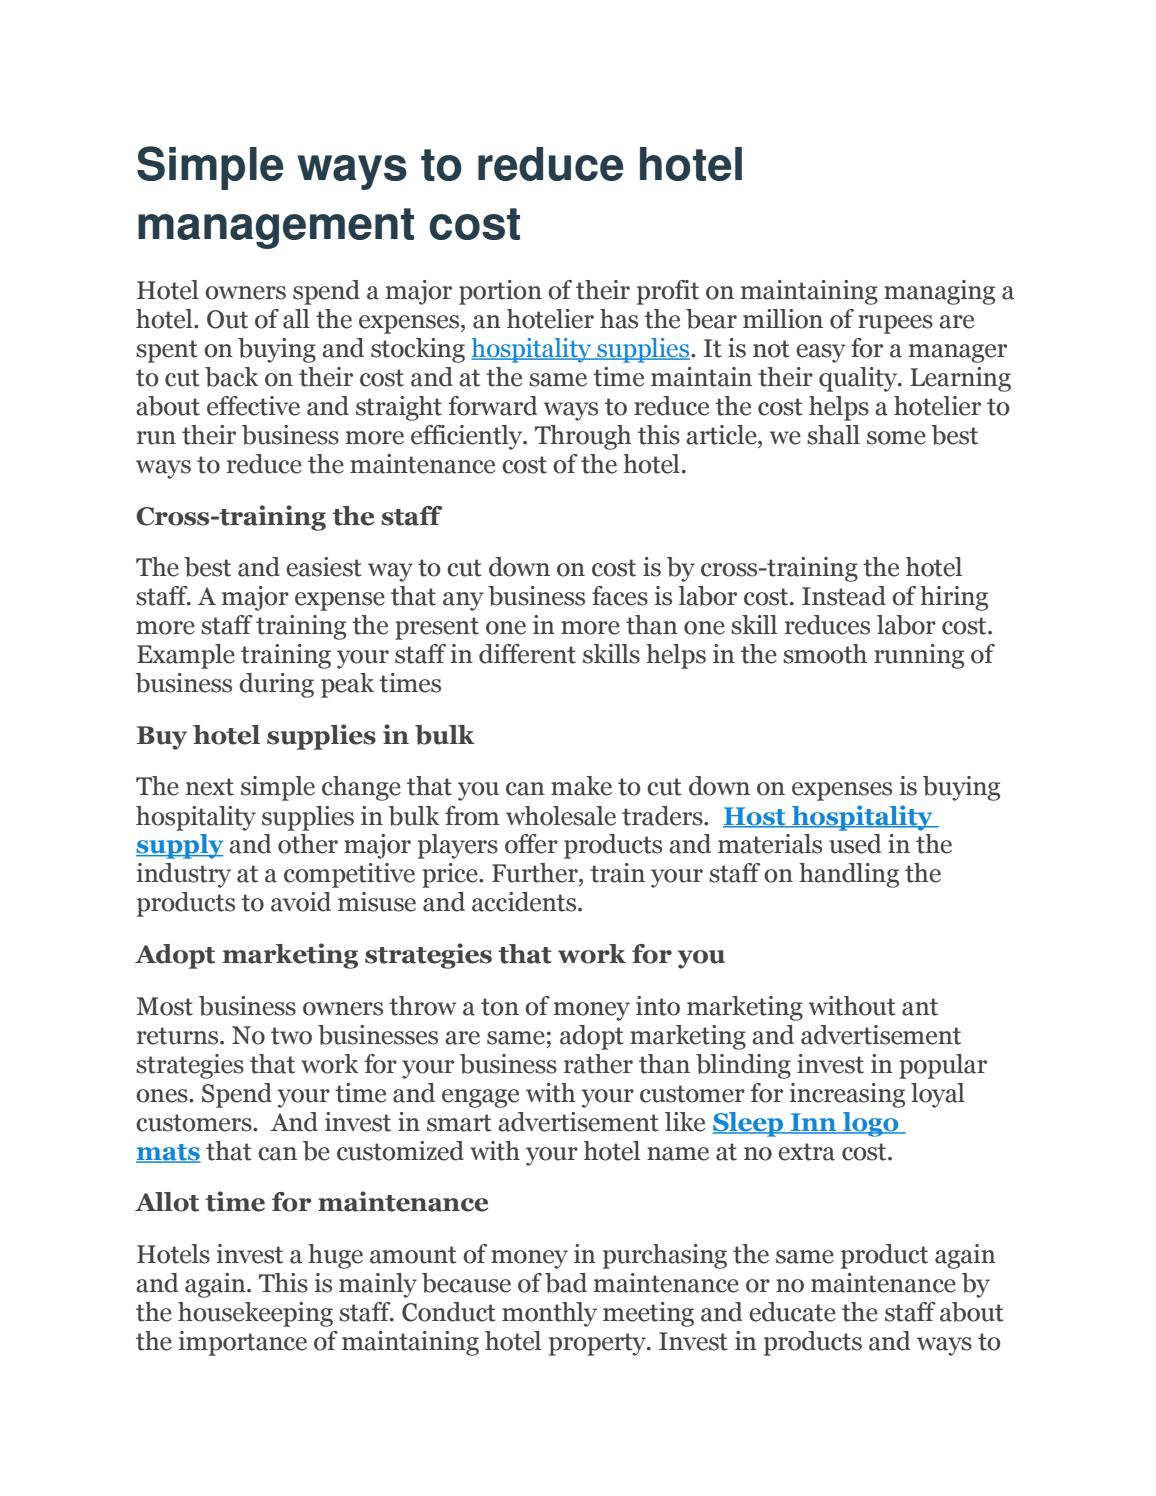 Simple ways to reduce hotel management cost by AVM